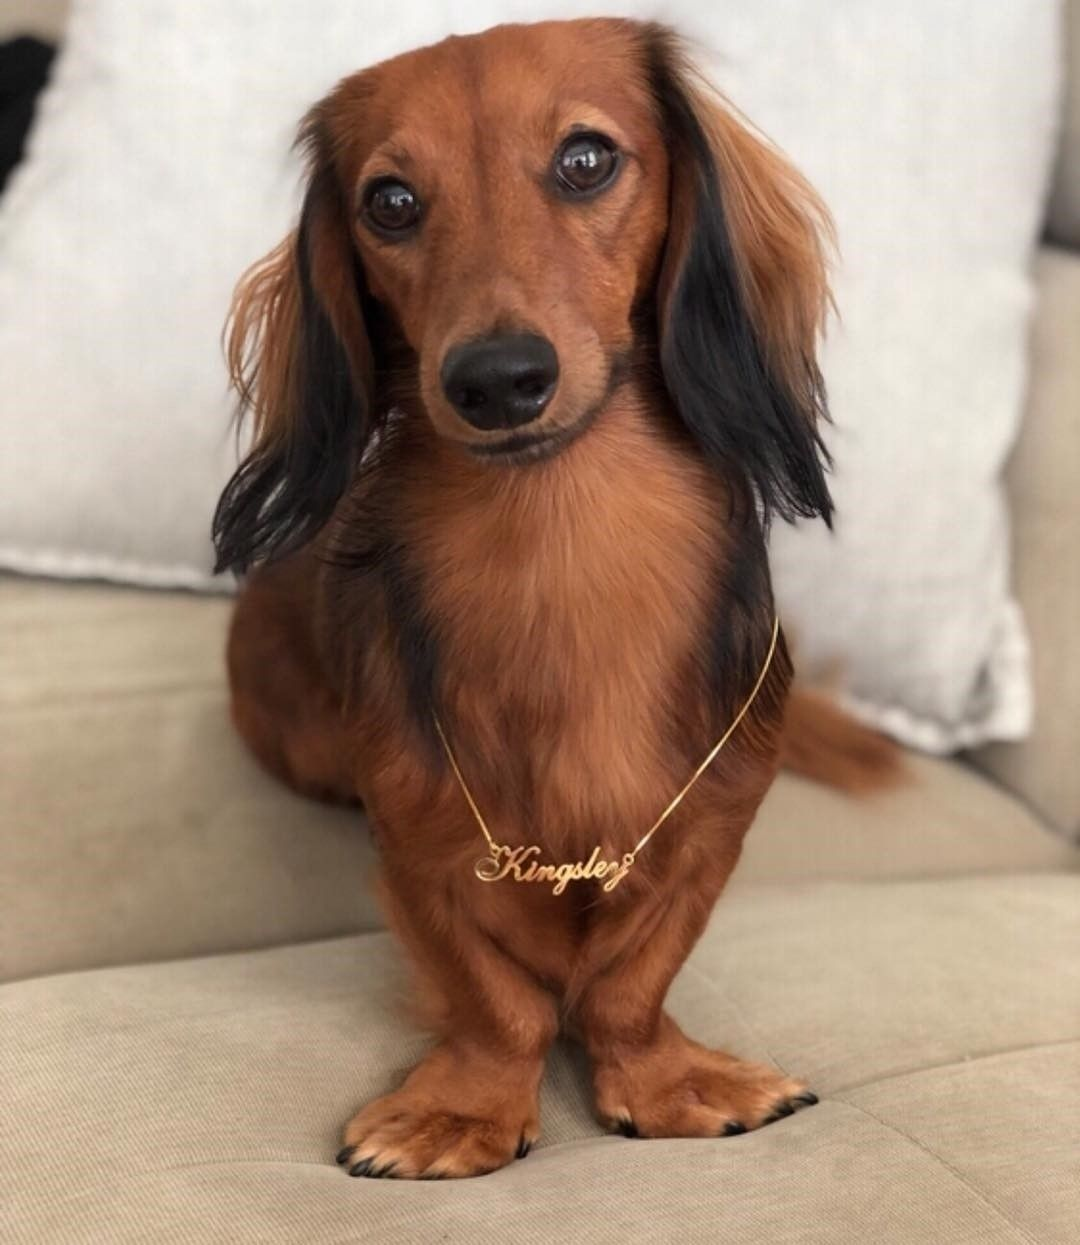 Pin By Danielle Marie On Adorable Doxies 3 Dachshund Dogs Puppies